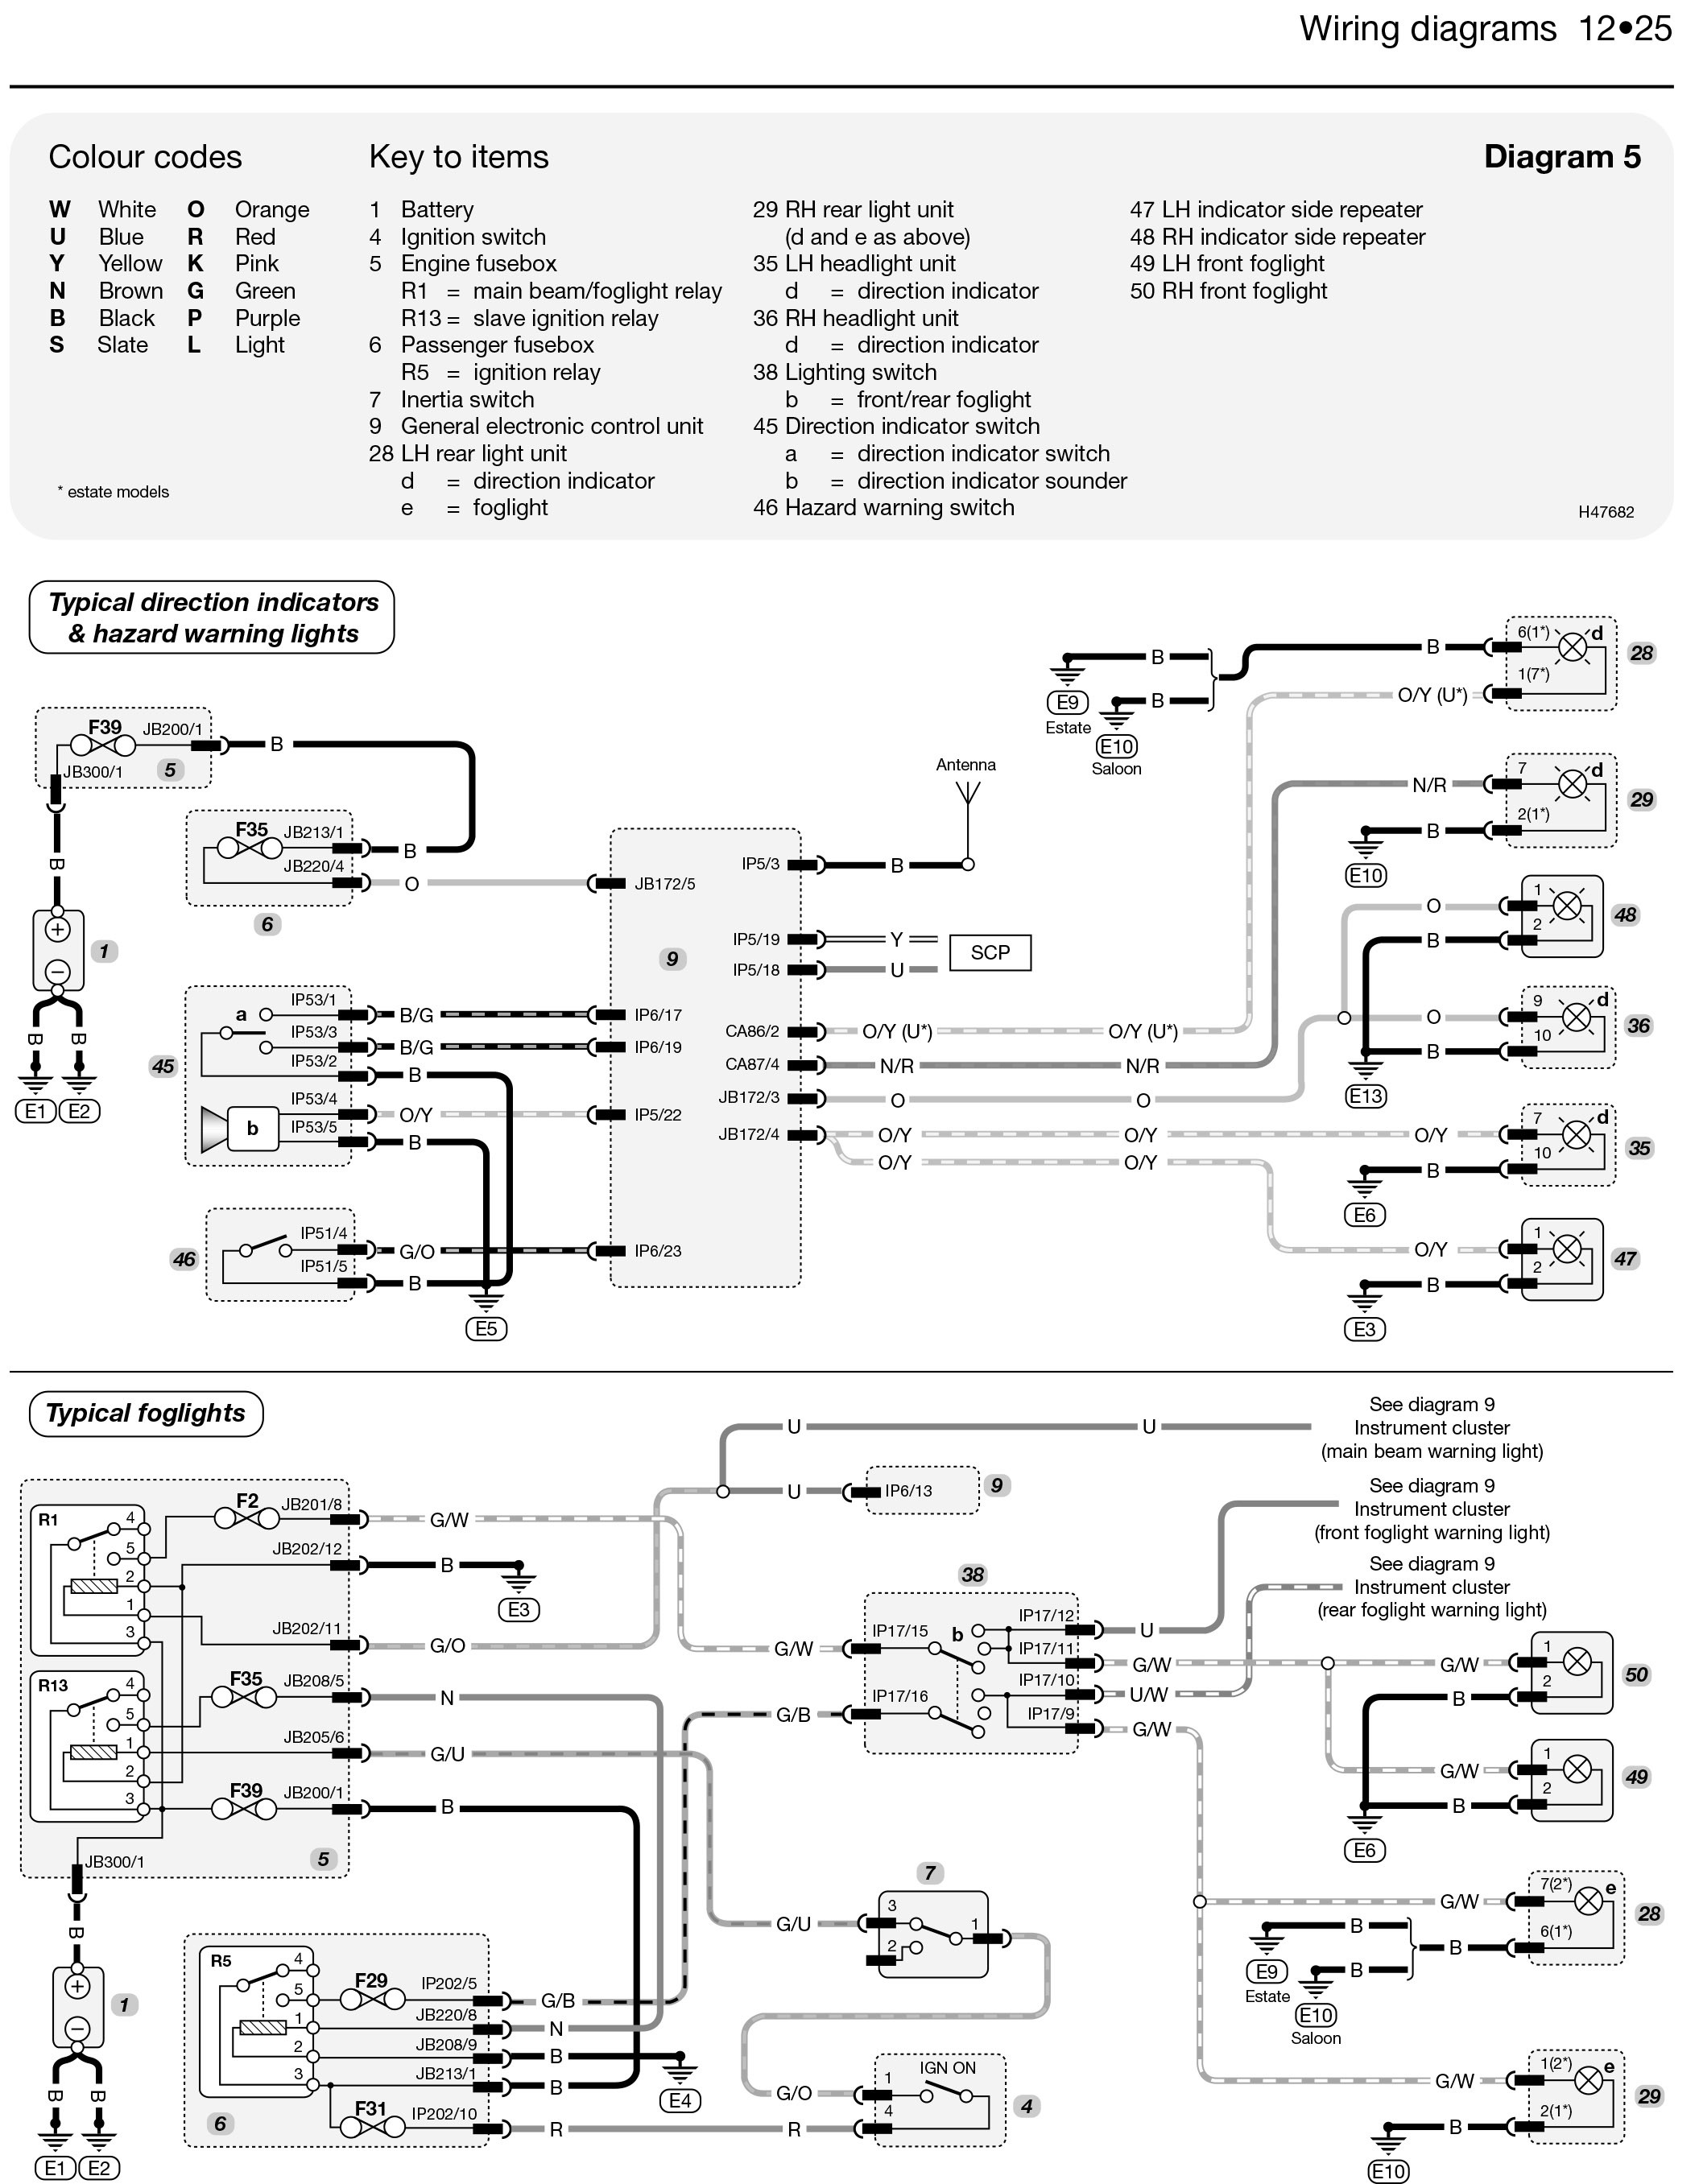 jaguar s type stereo wiring harness diagram - wiring diagram export  file-momentum - file-momentum.congressosifo2018.it  congressosifo2018.it